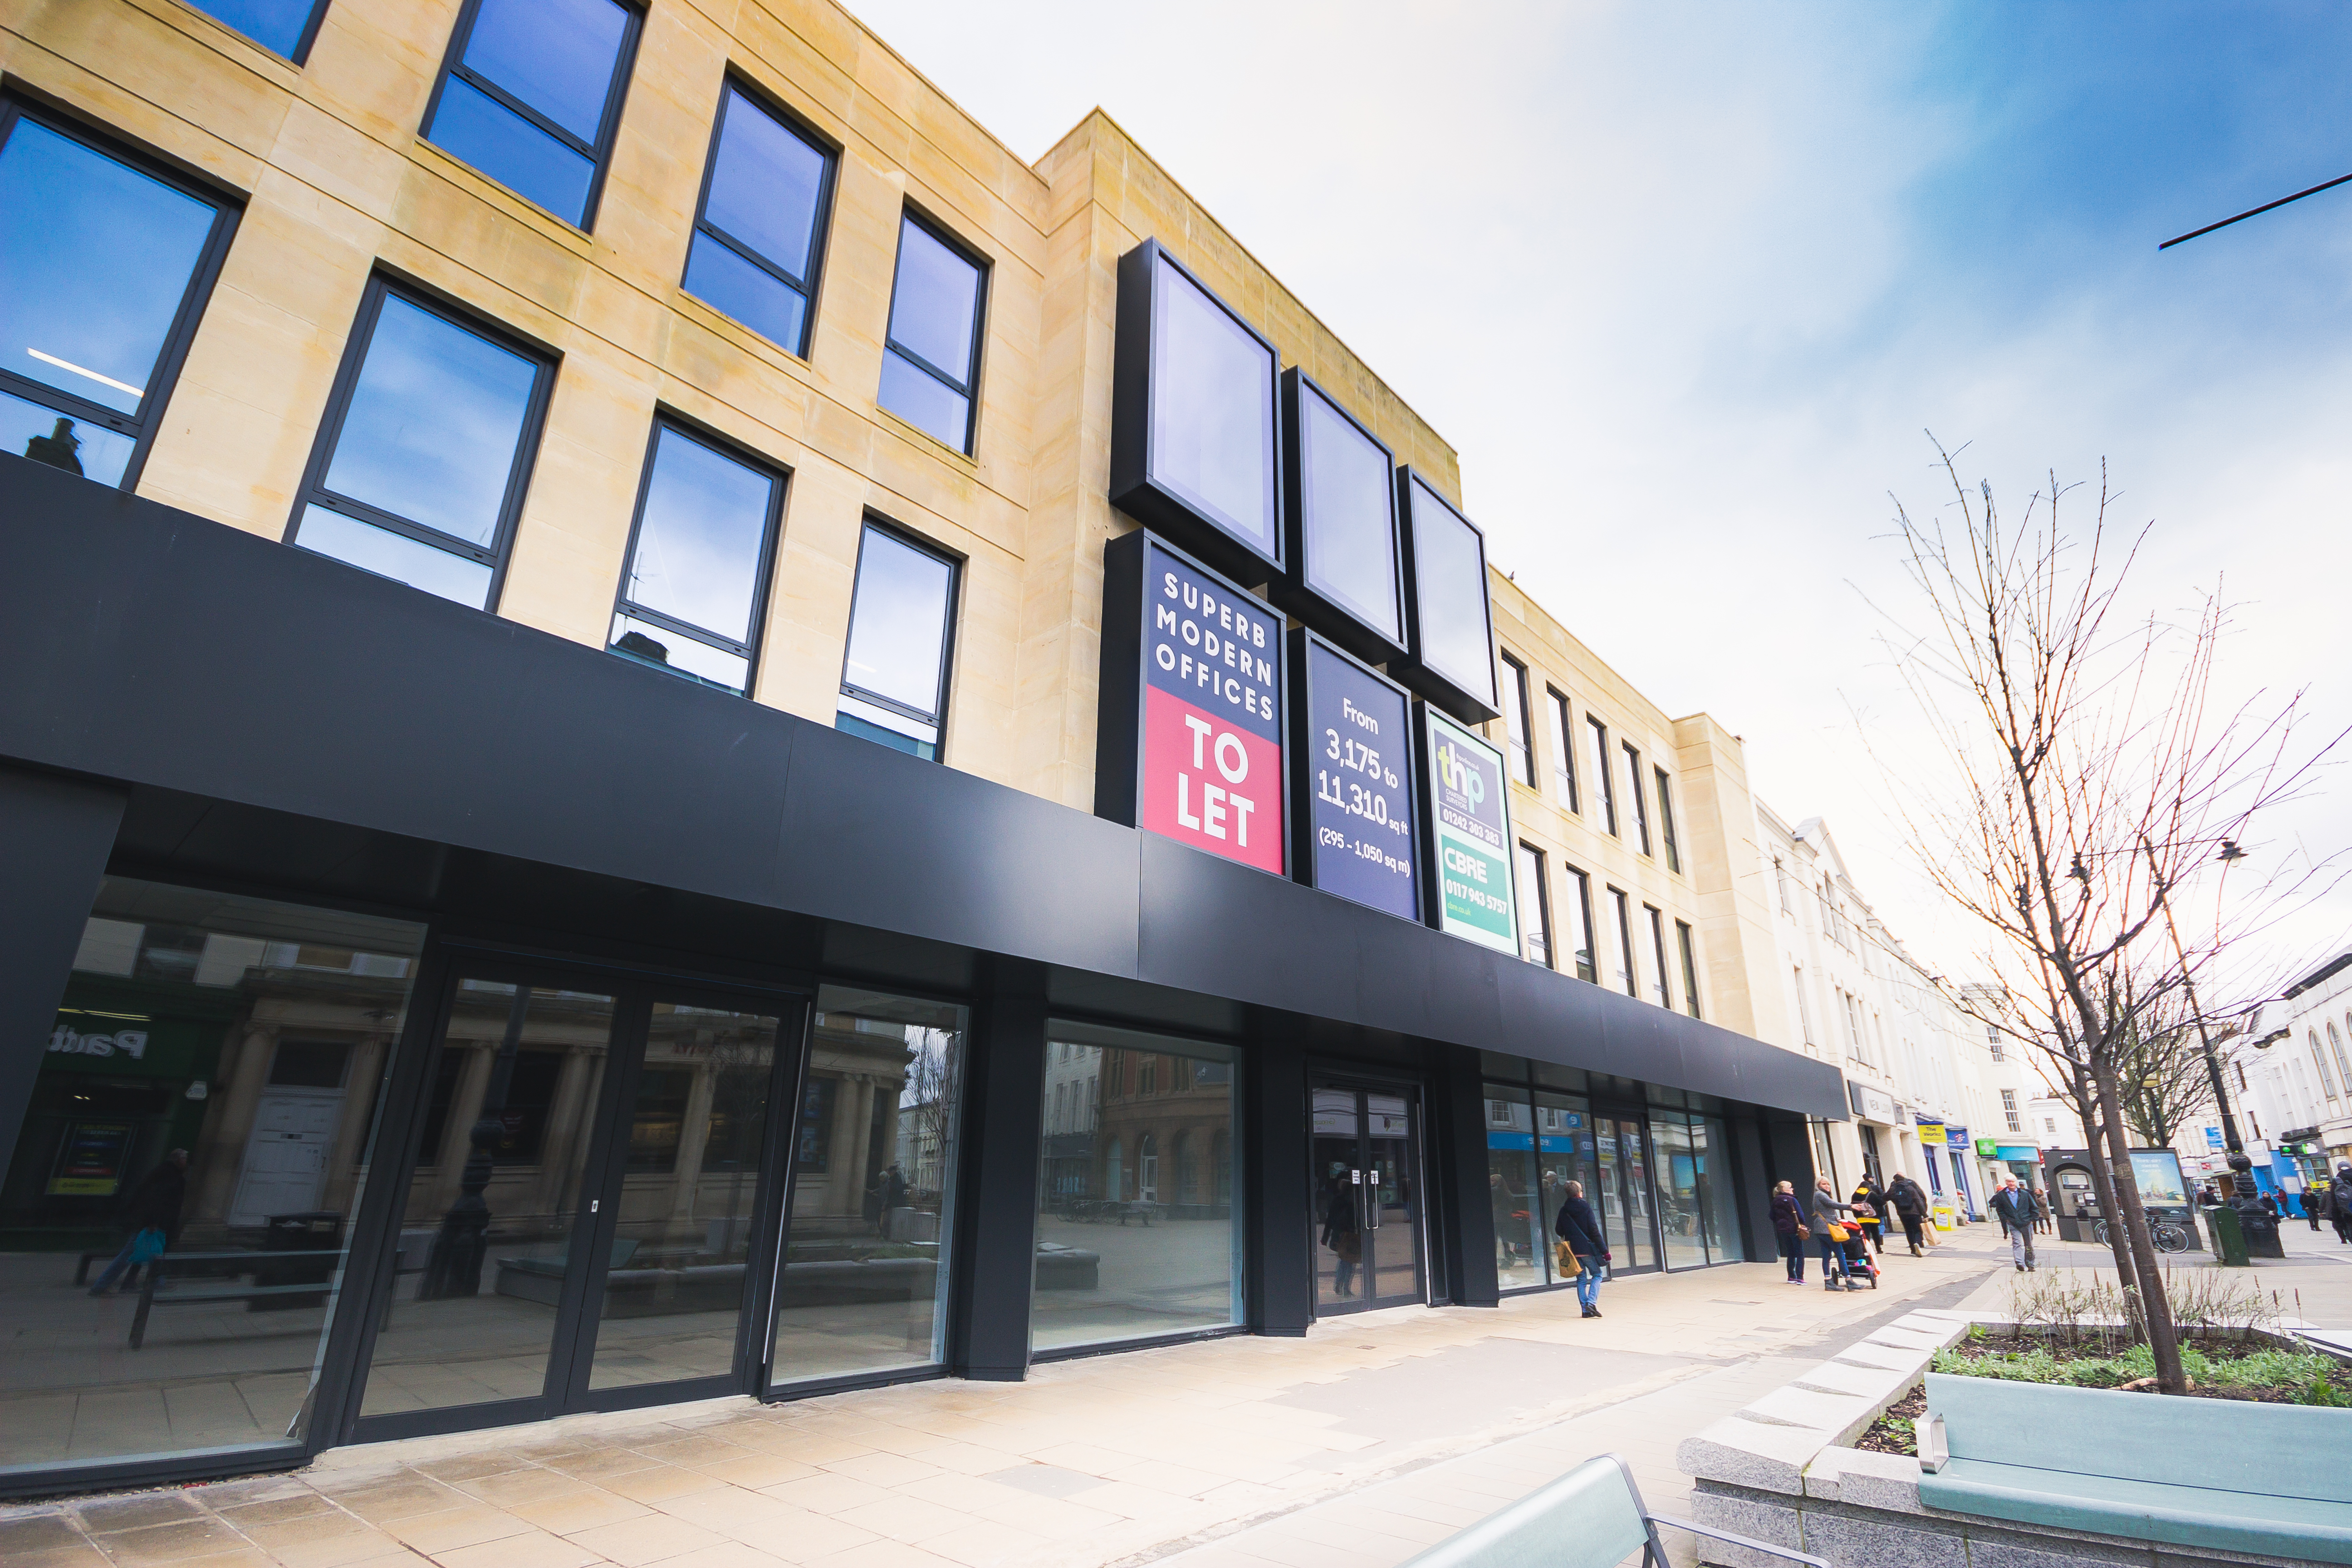 ADDINGTON CAPITAL SECURES NEW 10 YEAR LEASES ON OFFICE FLOORS IN RE- PURPOSED MIXED-USE BLOCK IN CHELTENHAM